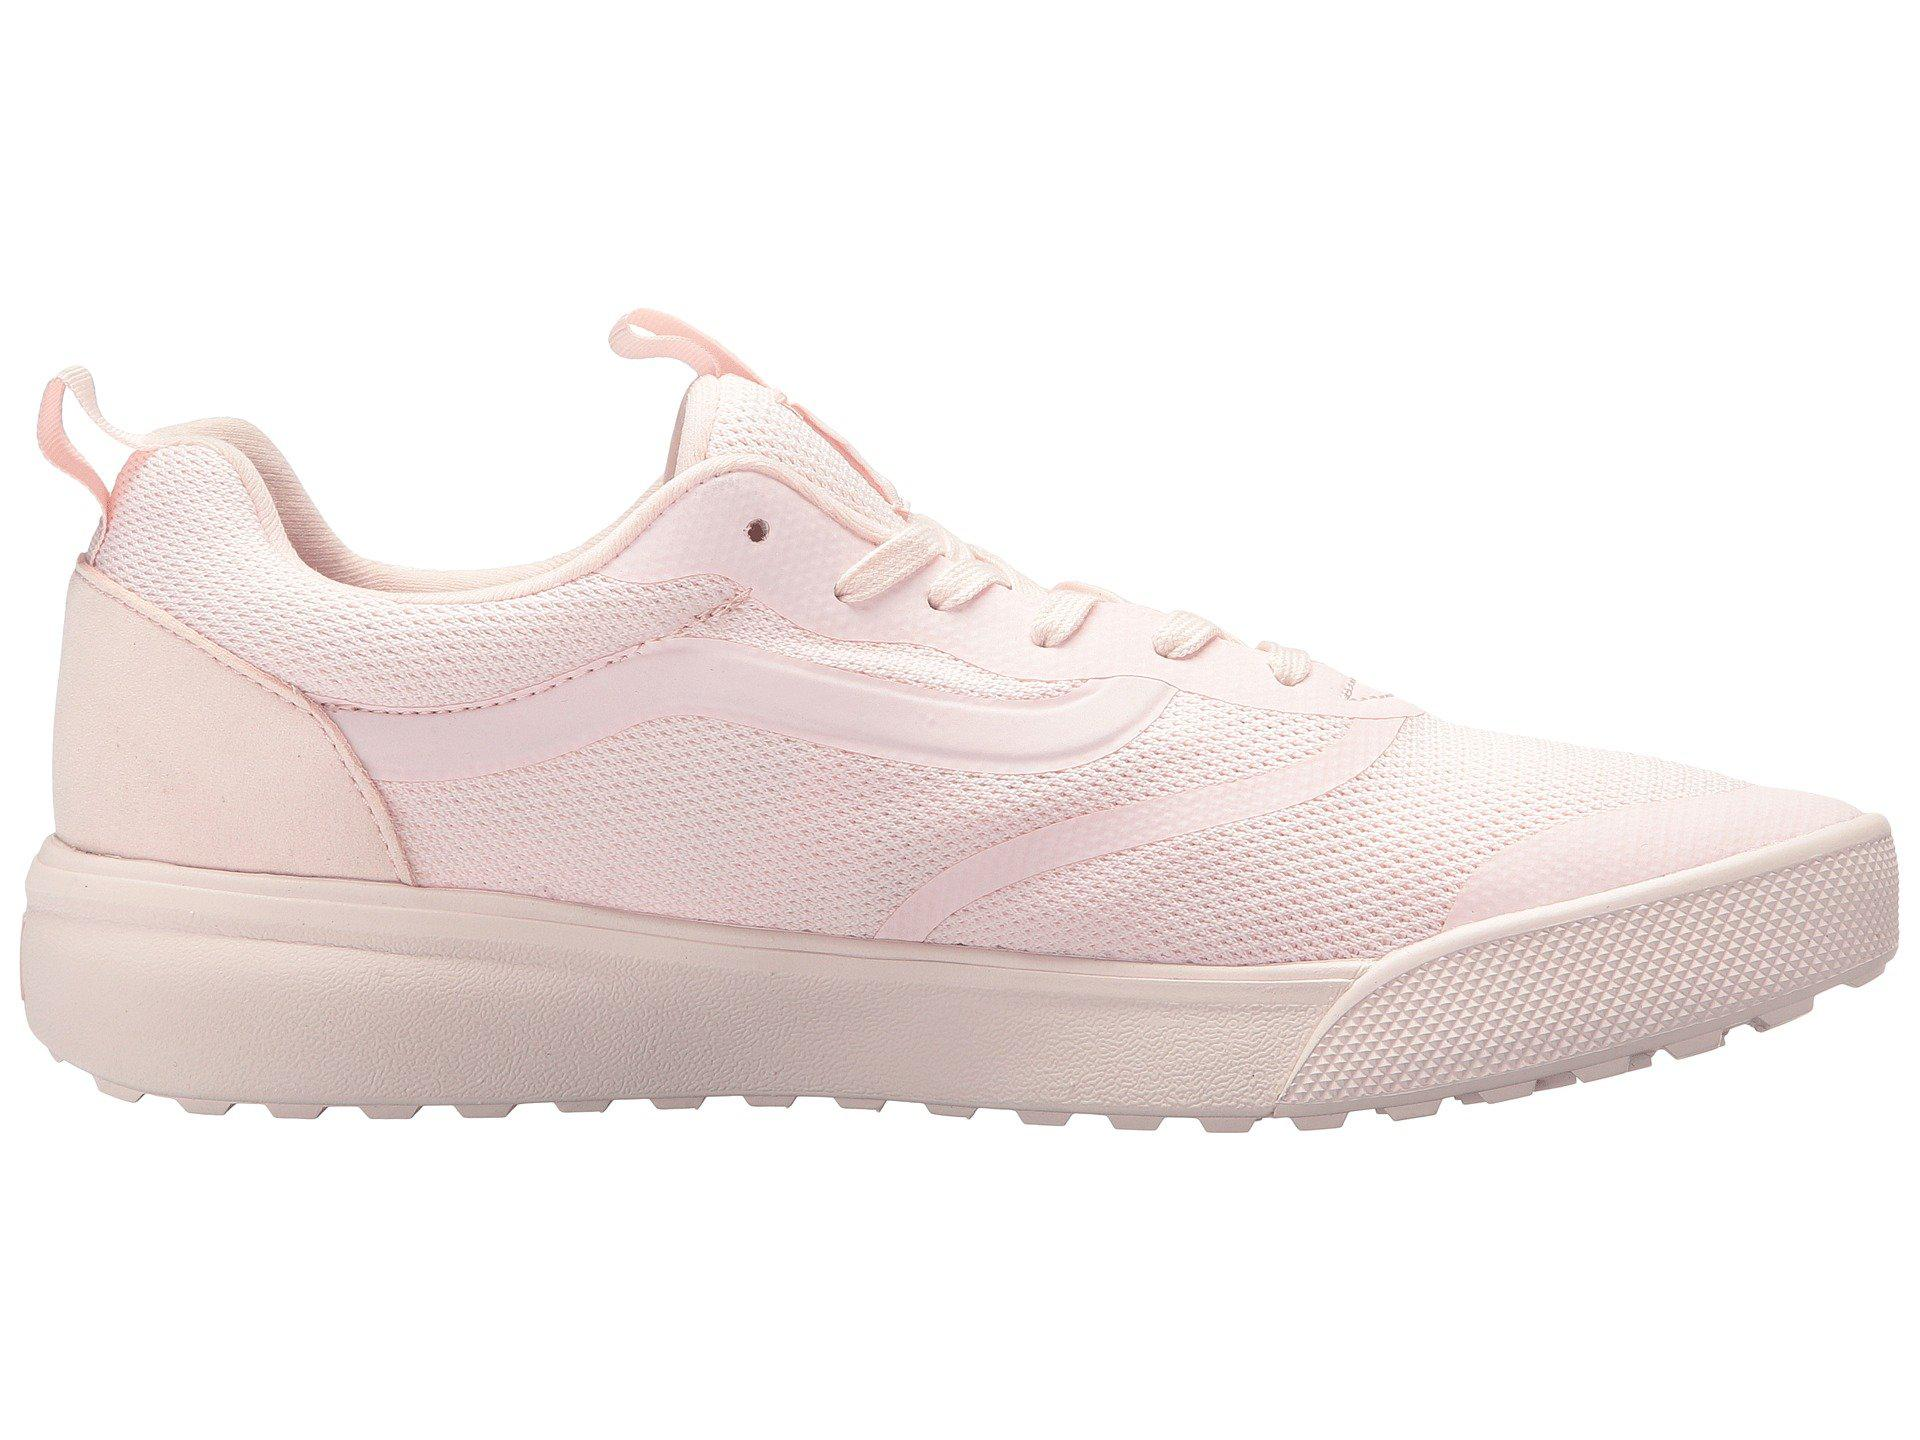 Ultrarange Rapidweld '18 (pearl) Skate Shoes